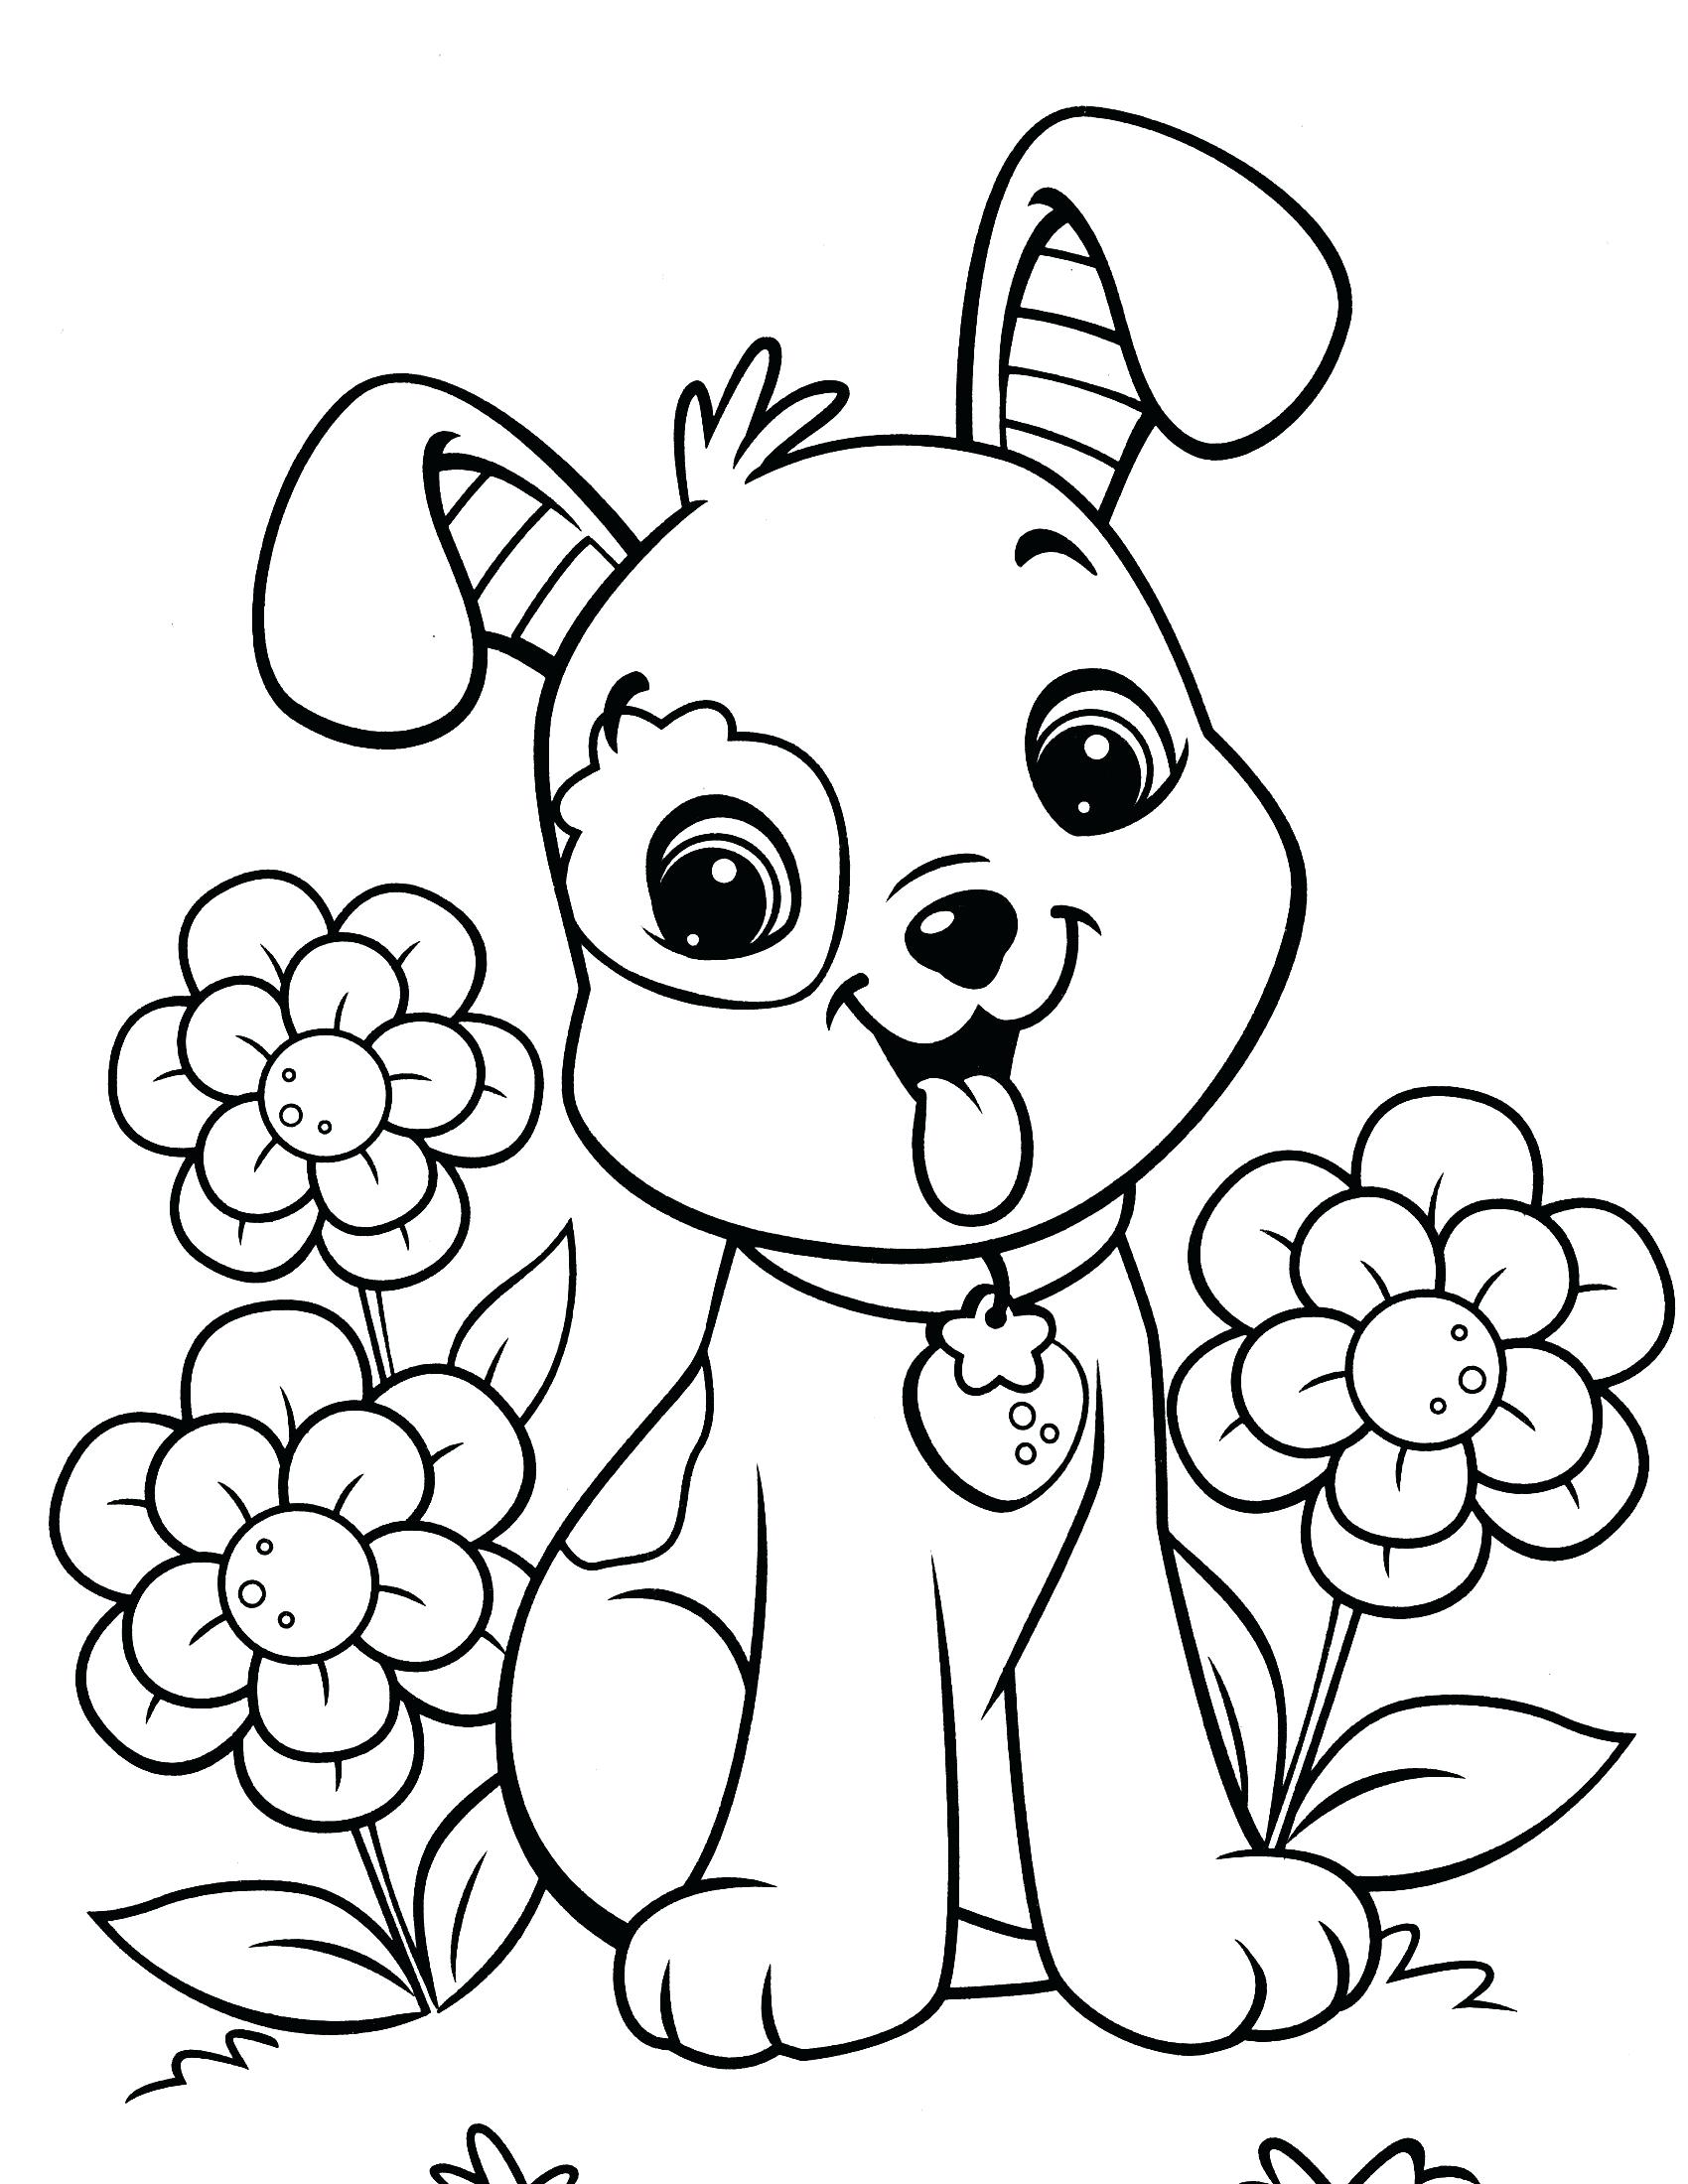 Preschool Kitten Coloring Pages